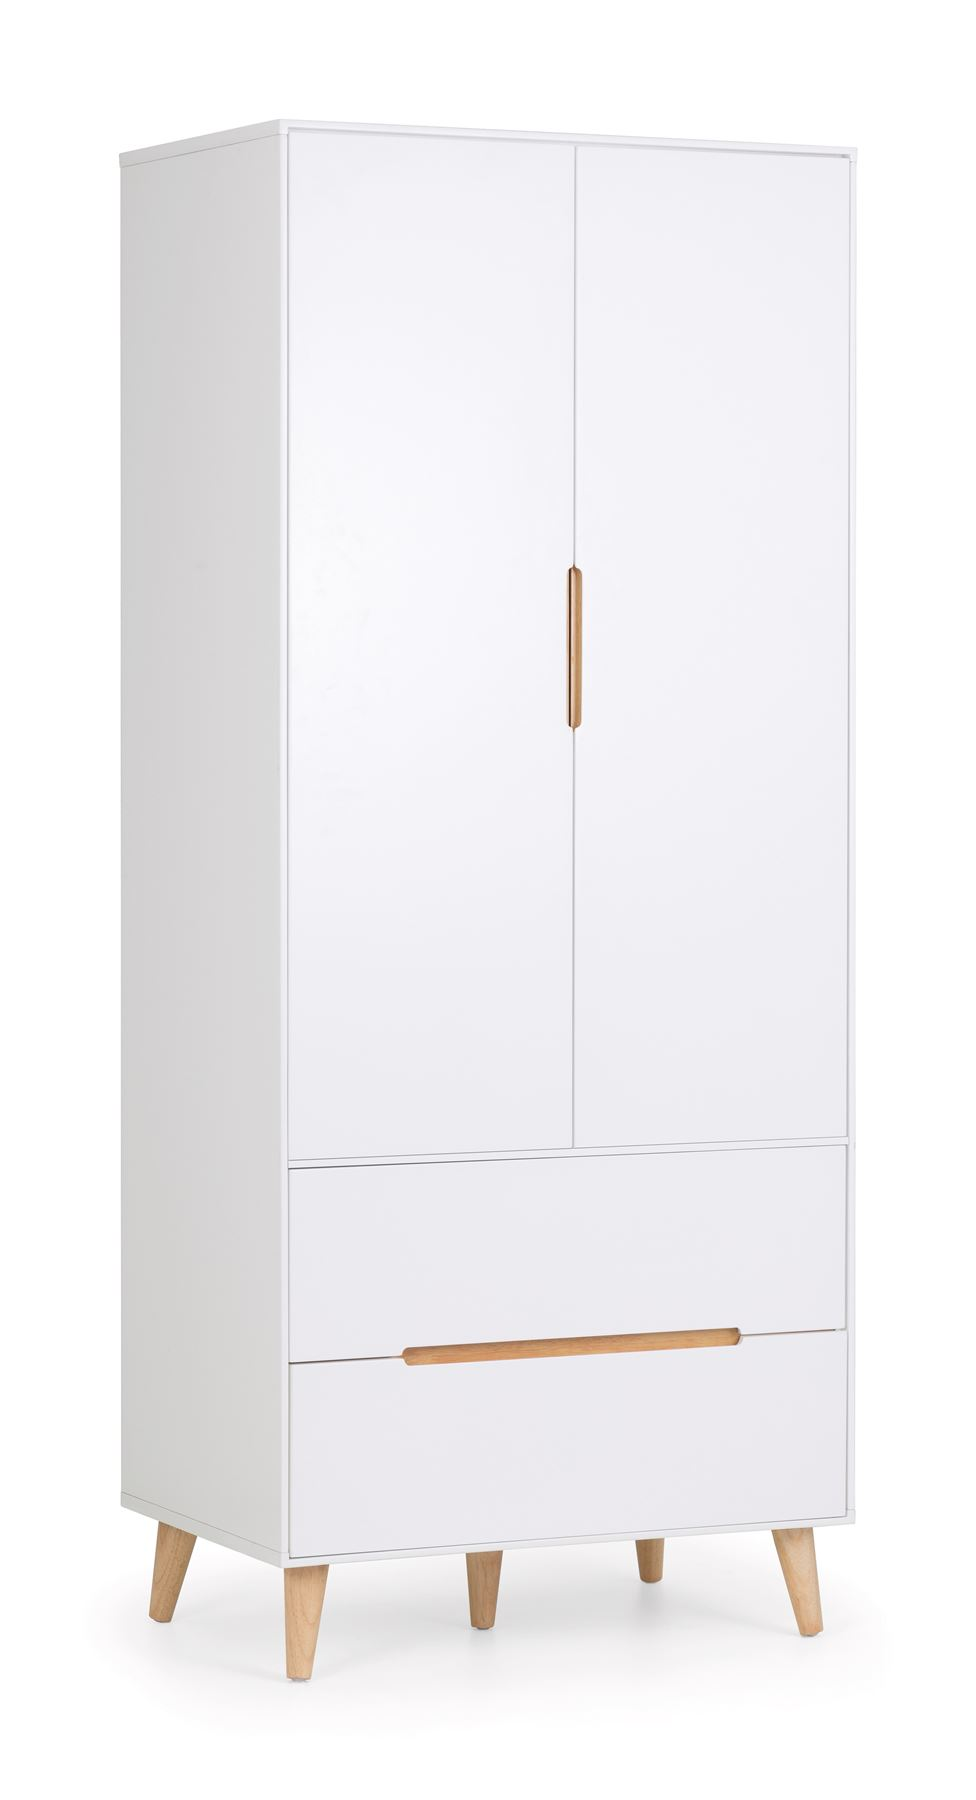 Julian Bowen Alicia 2 Door 2 Drawer Wardrobe Scandinavian Modern Retro White Oak